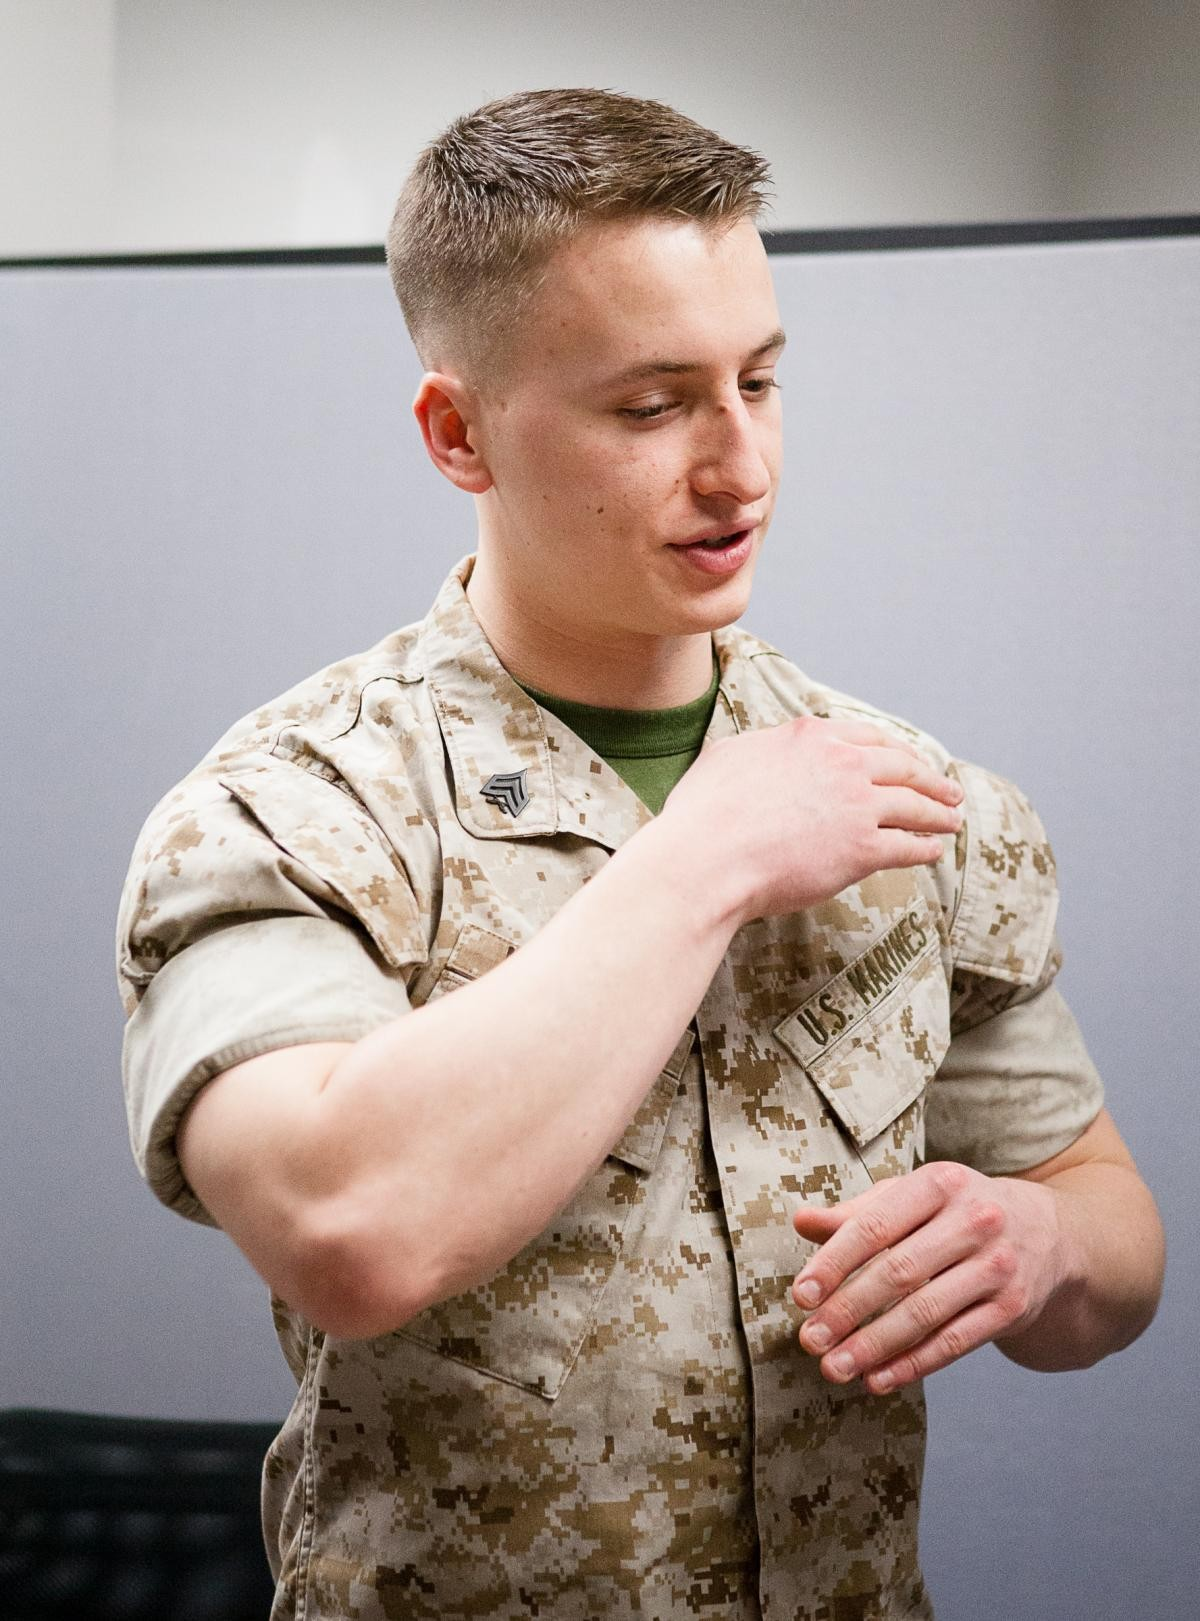 sleeves up   u0026 39 sun u0026 39 s out  guns out u0026 39  throughout the corps